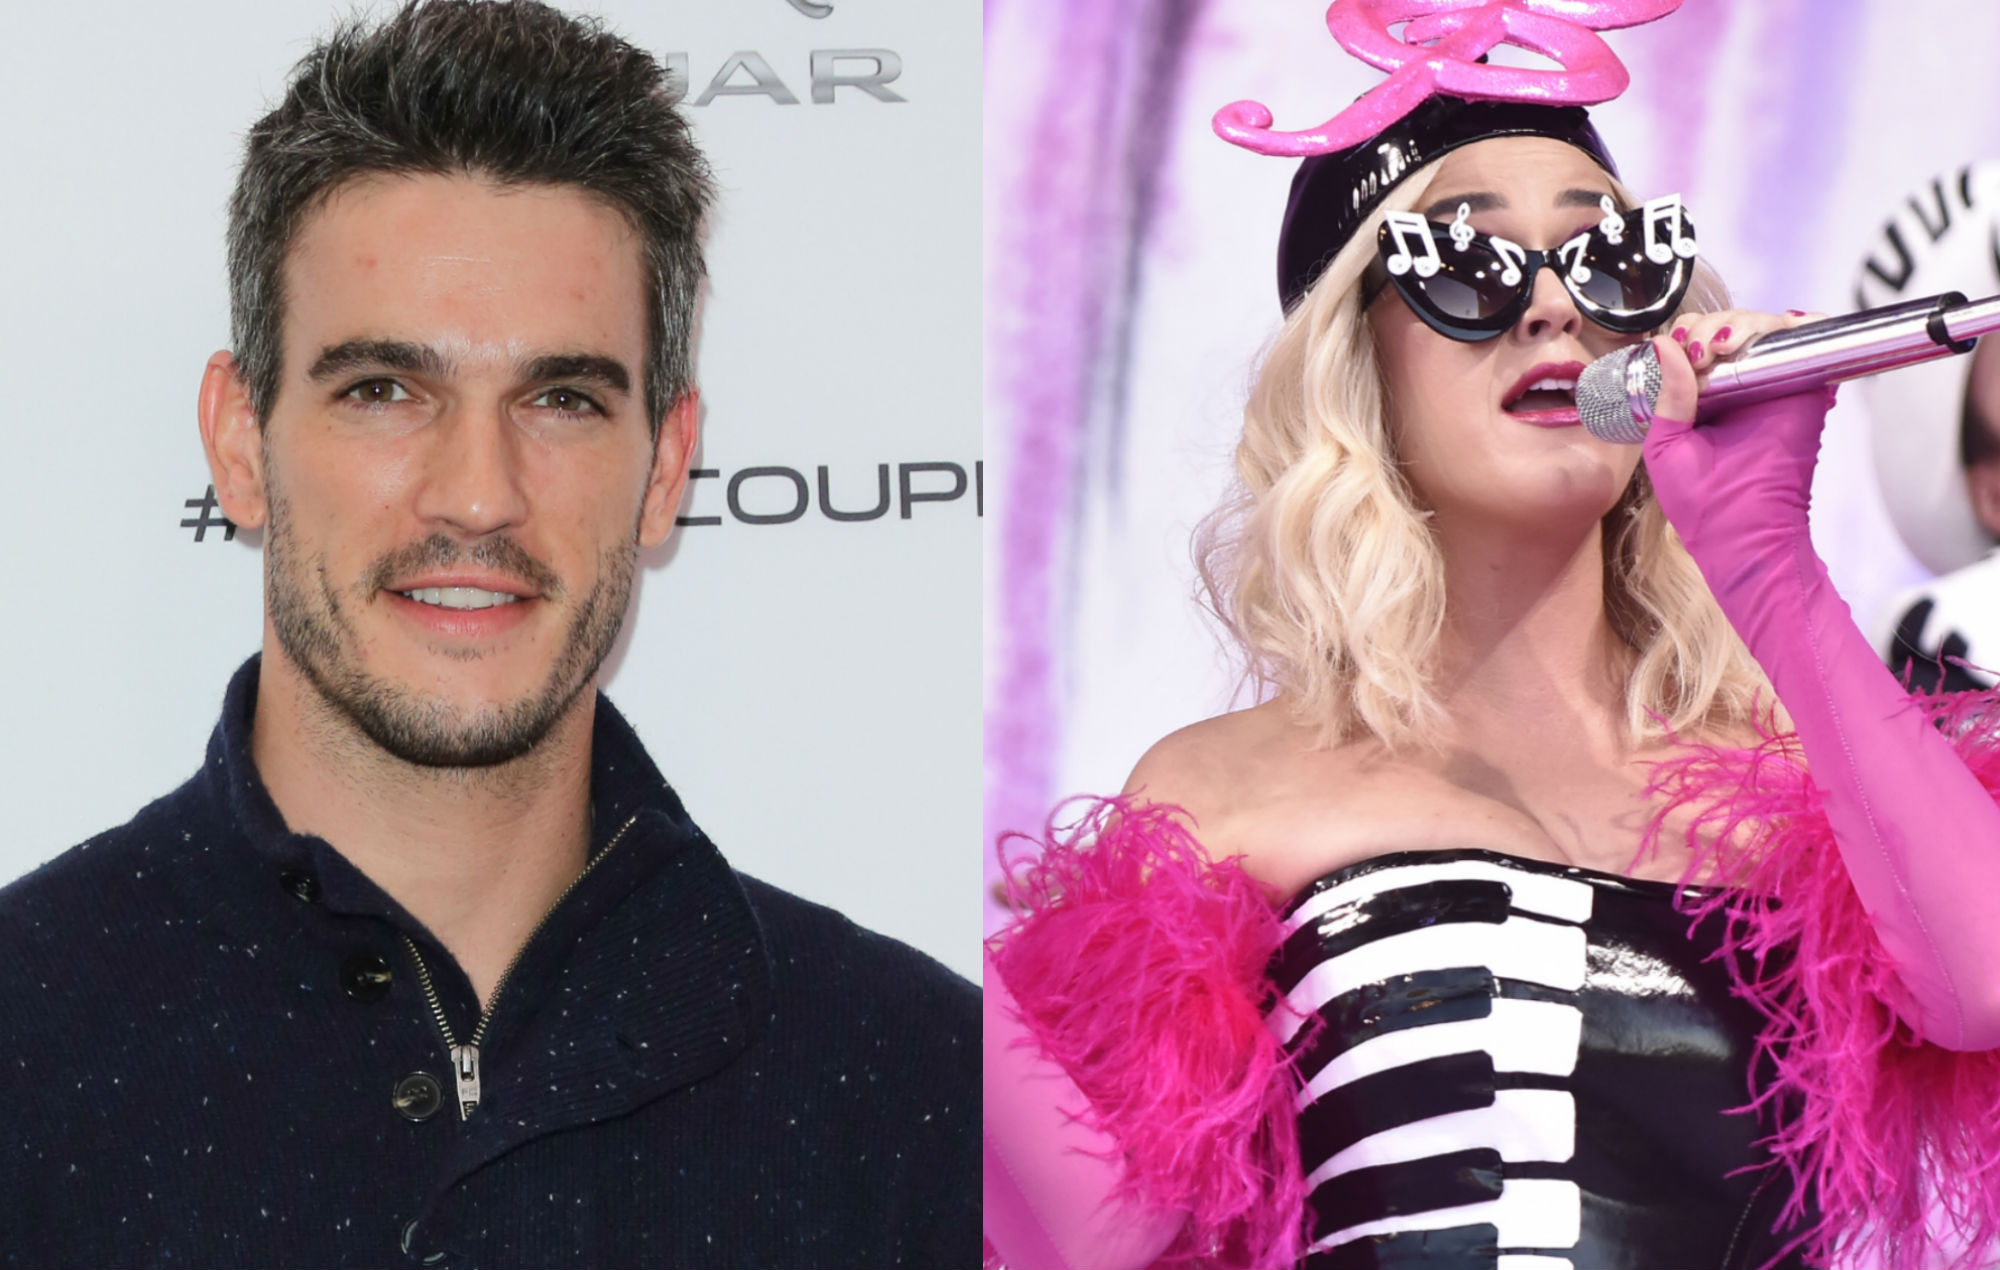 Josh Kloss accuses Katy Perry of sexual harassment